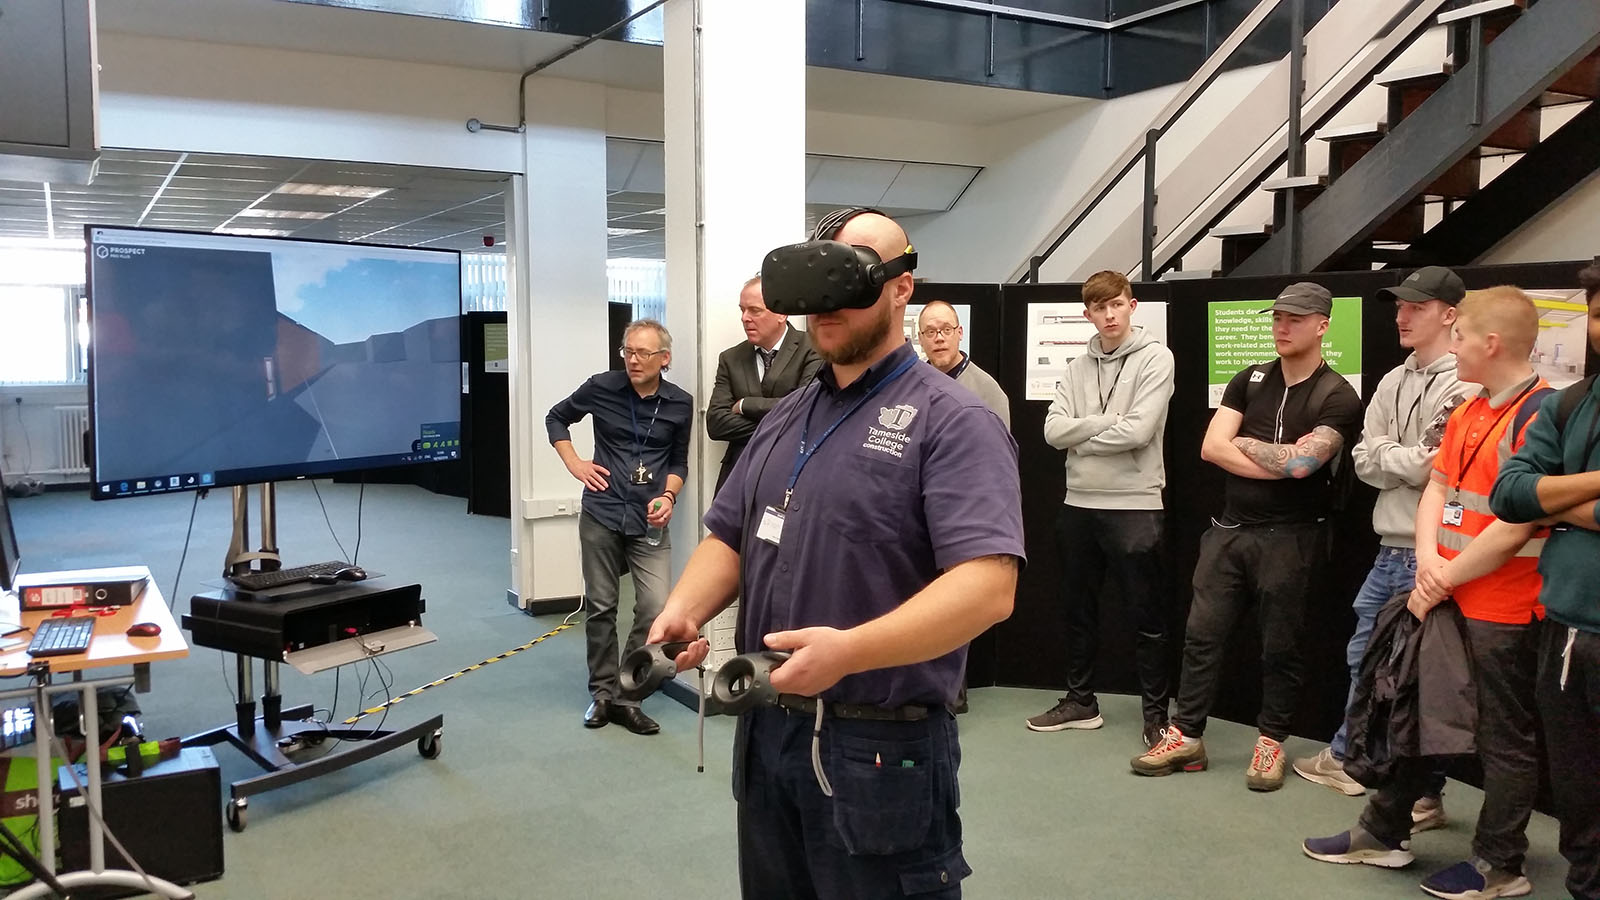 VR engagement with students at Tameside College